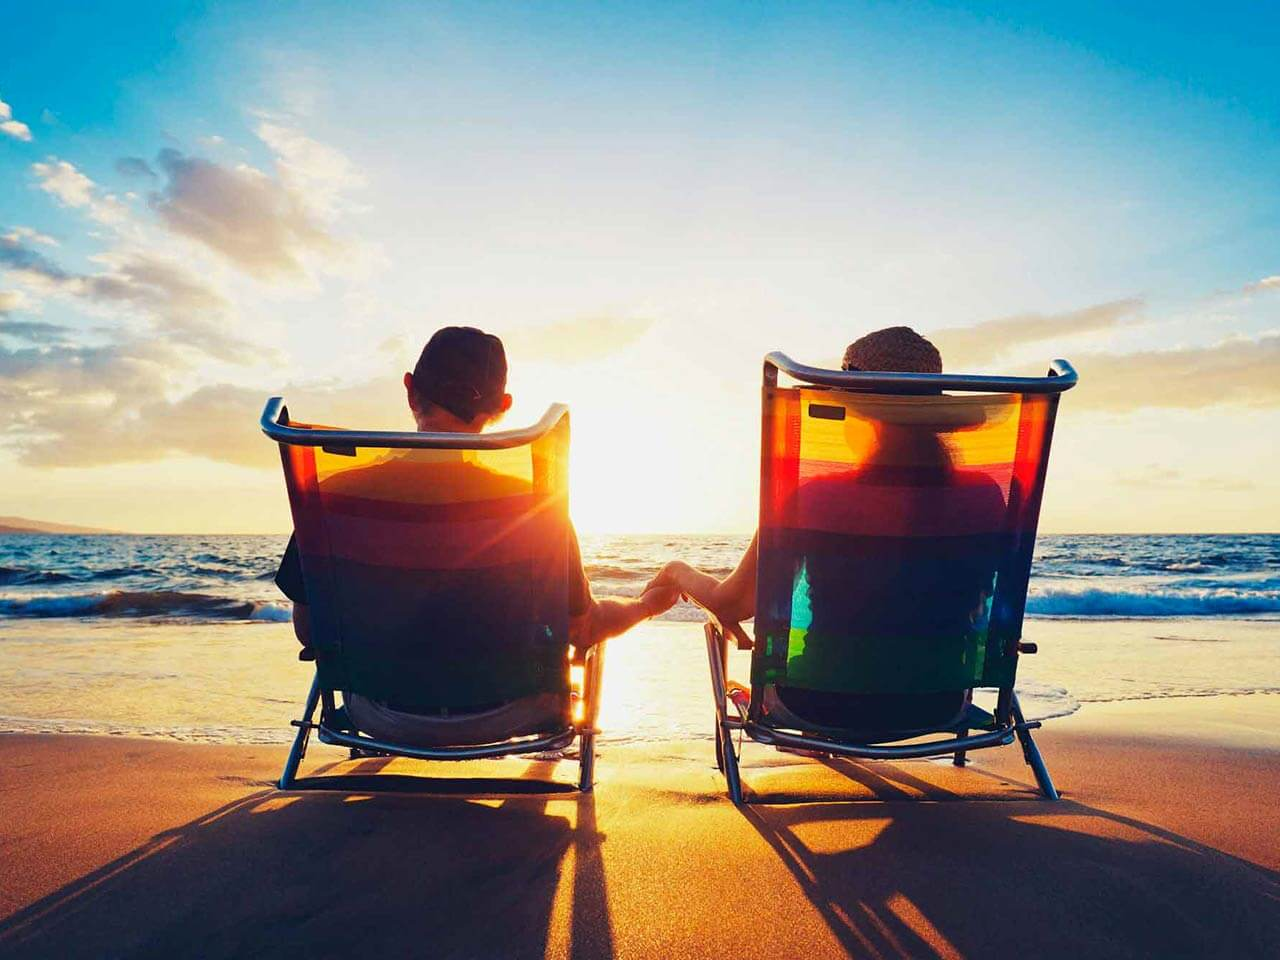 Couple sitting in deckchairs at the beach